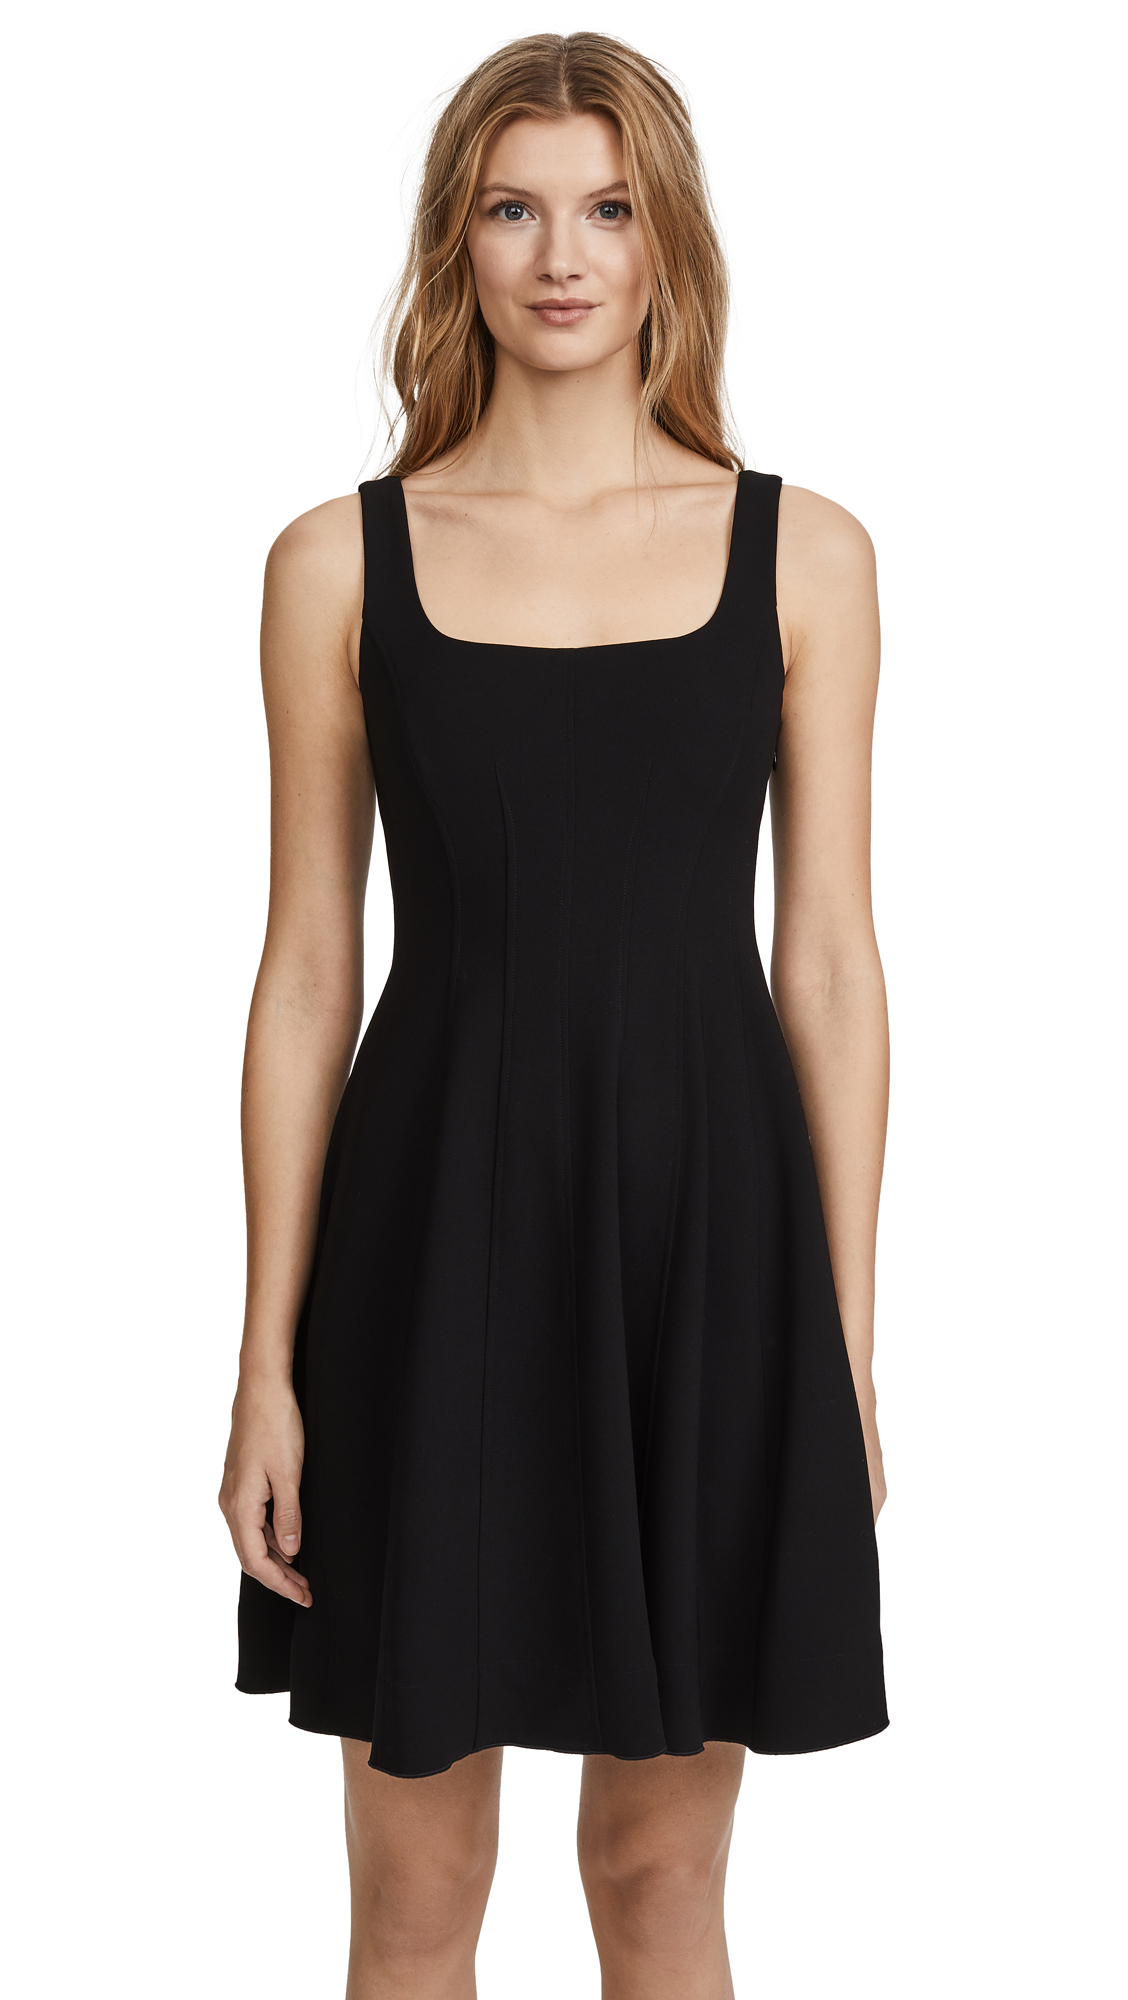 Theory Modern Flare Dress - Black